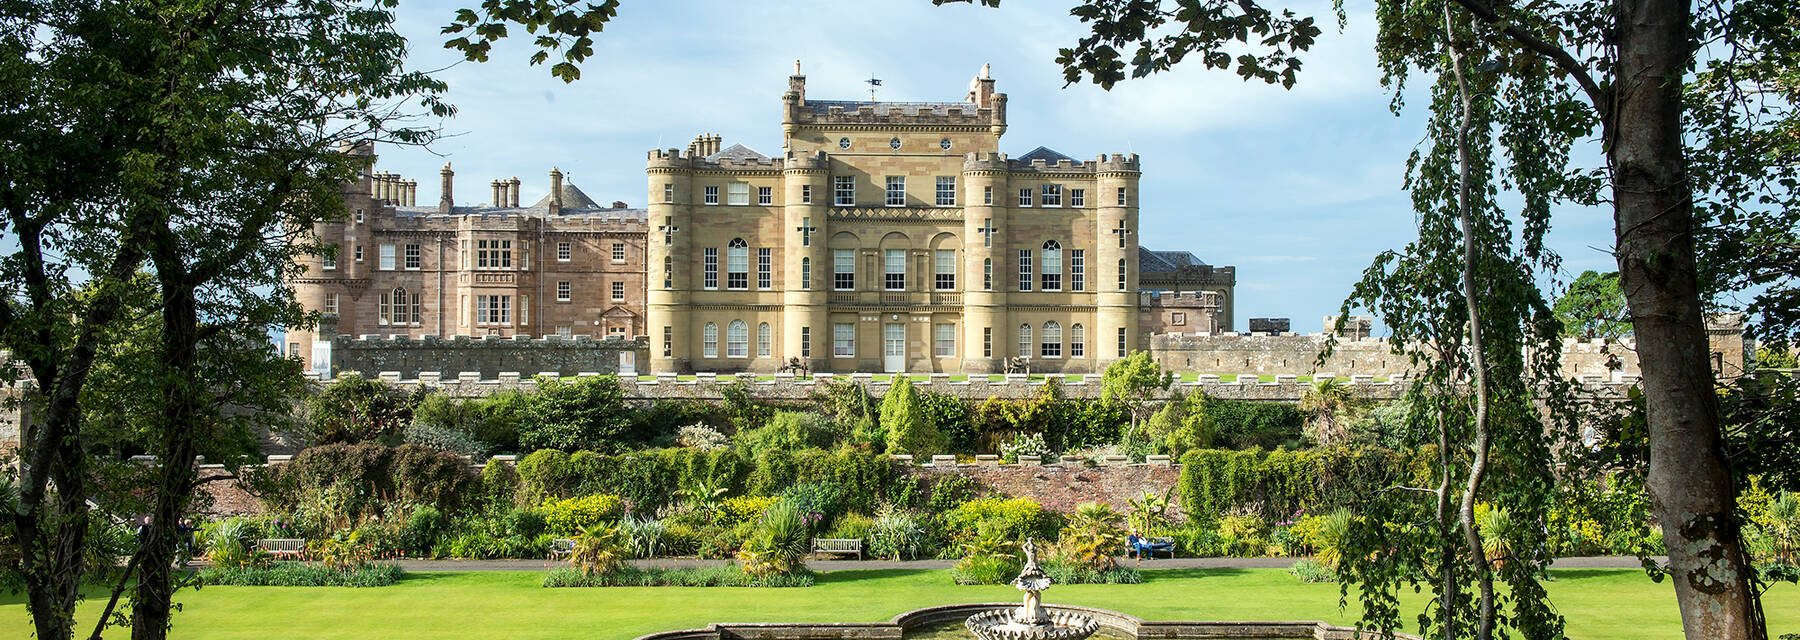 Culzean Castle, with the Fountain Court in front.